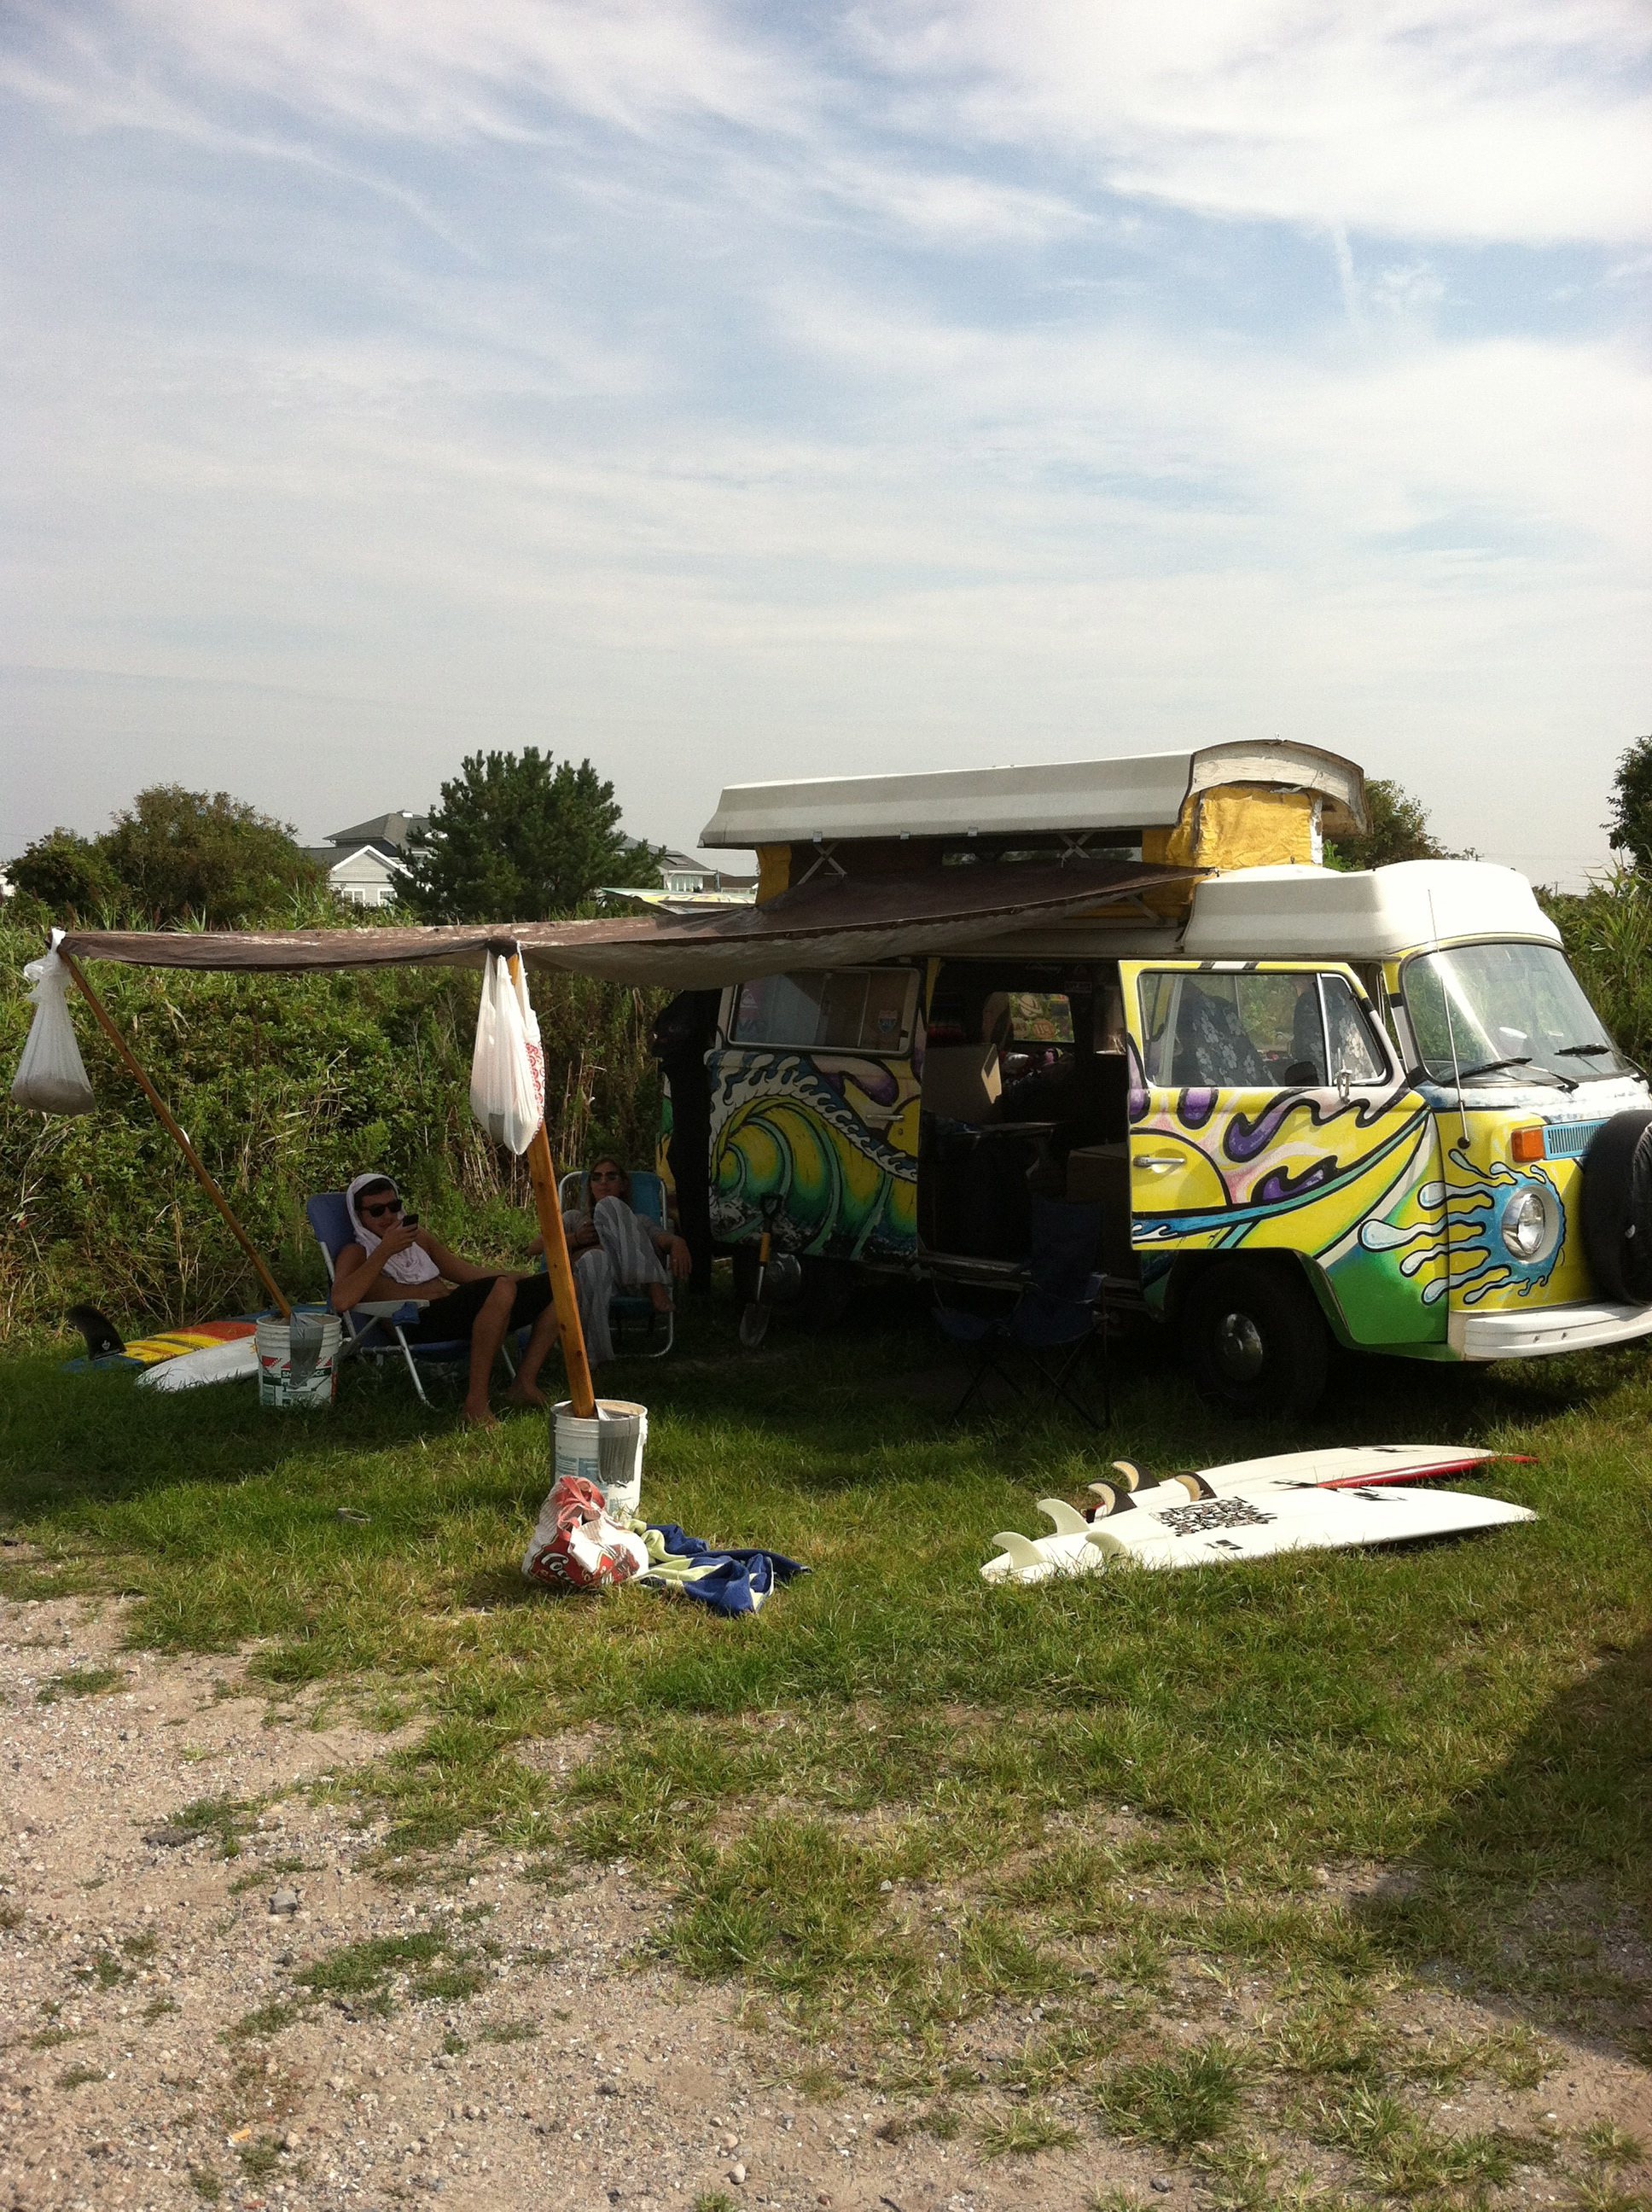 """Thank you for the inspirational photo and words@crosstepculture and @saltroots """"I captured this image last summer at Lido Beach, New York. We had just gotten out from our first surf of the day and the sun was already beating down on us as we walked back to """"Rivi"""", my 1977 Volkswagen Bus. After an hour or so in the hot sun, we decided to rig up an awning to provide some refuge from the heat. Michelle and I rallied together a few of our friends and scoured the beach for anything we could use to pitch the tarp we had on hand. After about twenty minutes we had collected two cracked spackle buckets, five zip-ties, three plastic bags, a piece of rope, and old lobster trap, and two pieces of wood. Common beach trash was ingeniously re-porposed by our group of friends and built a pretty solid awning that even withstood a brief thunderstorm later that afternoon. We were all incredibly stoked with our creation, and still talk about it to this day. It was a great experience and a gorgeous day of fun surf, good friends, and good memories. Can't ask for much more than that in life""""."""